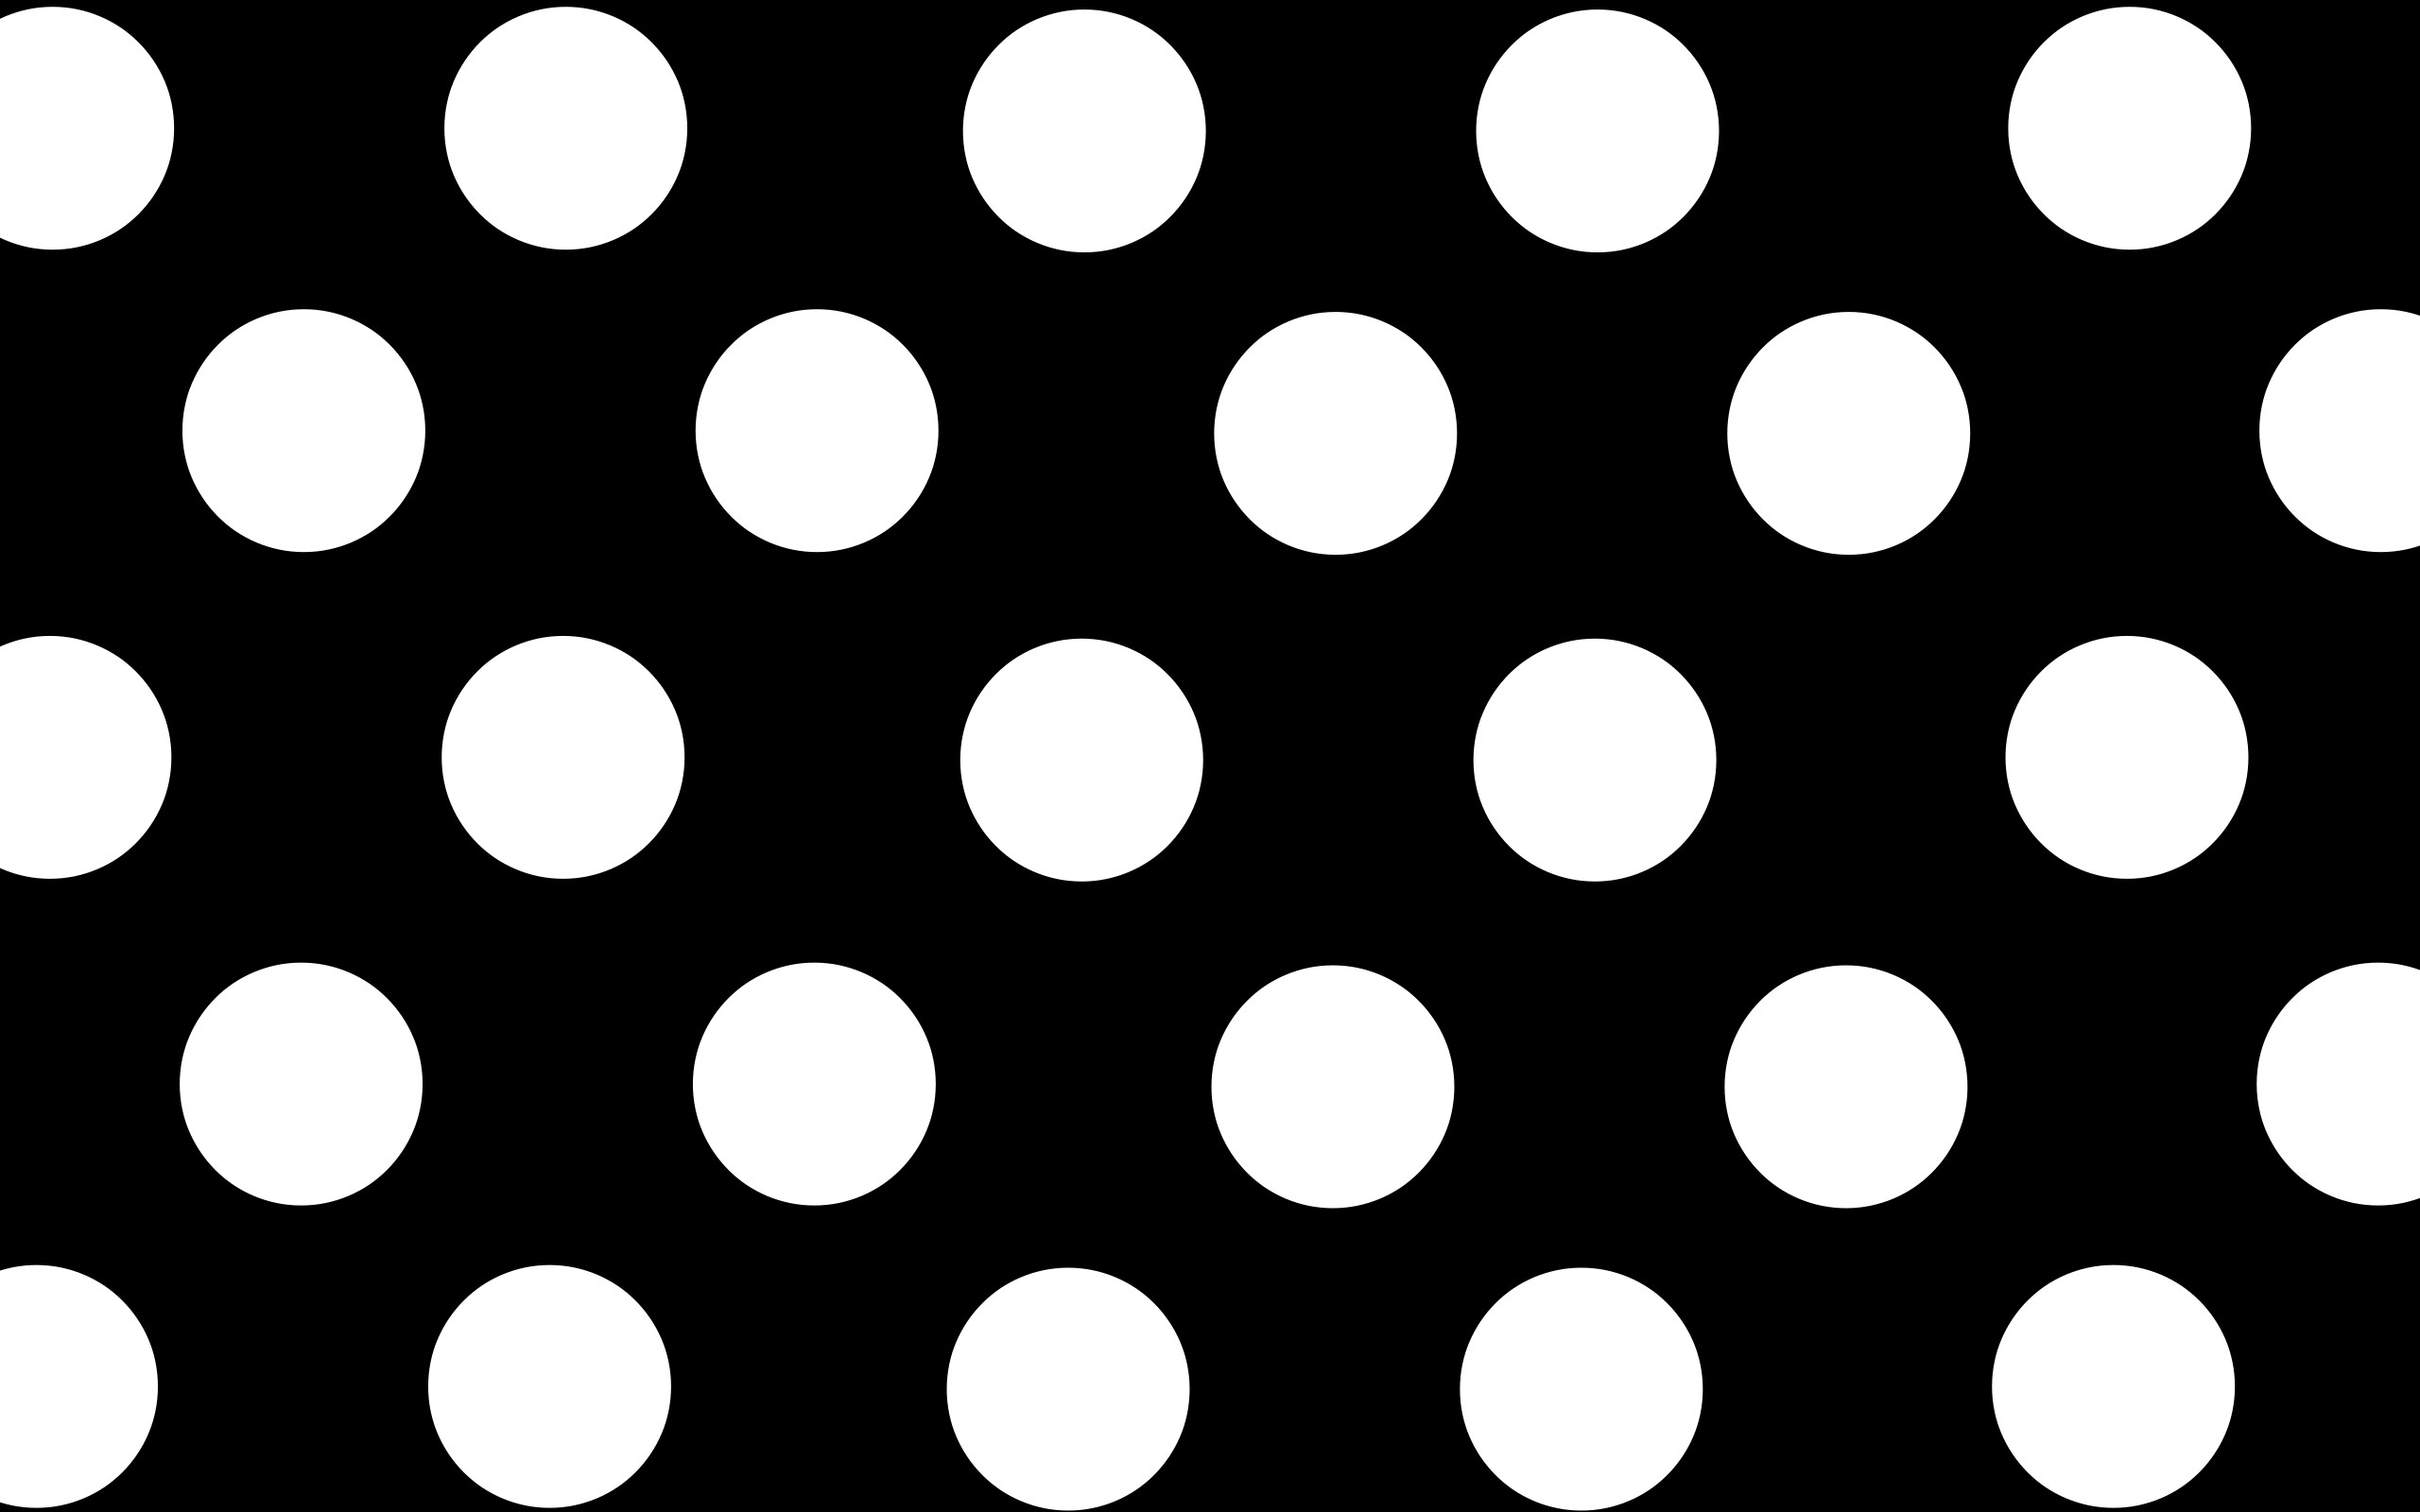 Black And White Polka Dot Wallpapers (5 Wallpapers)